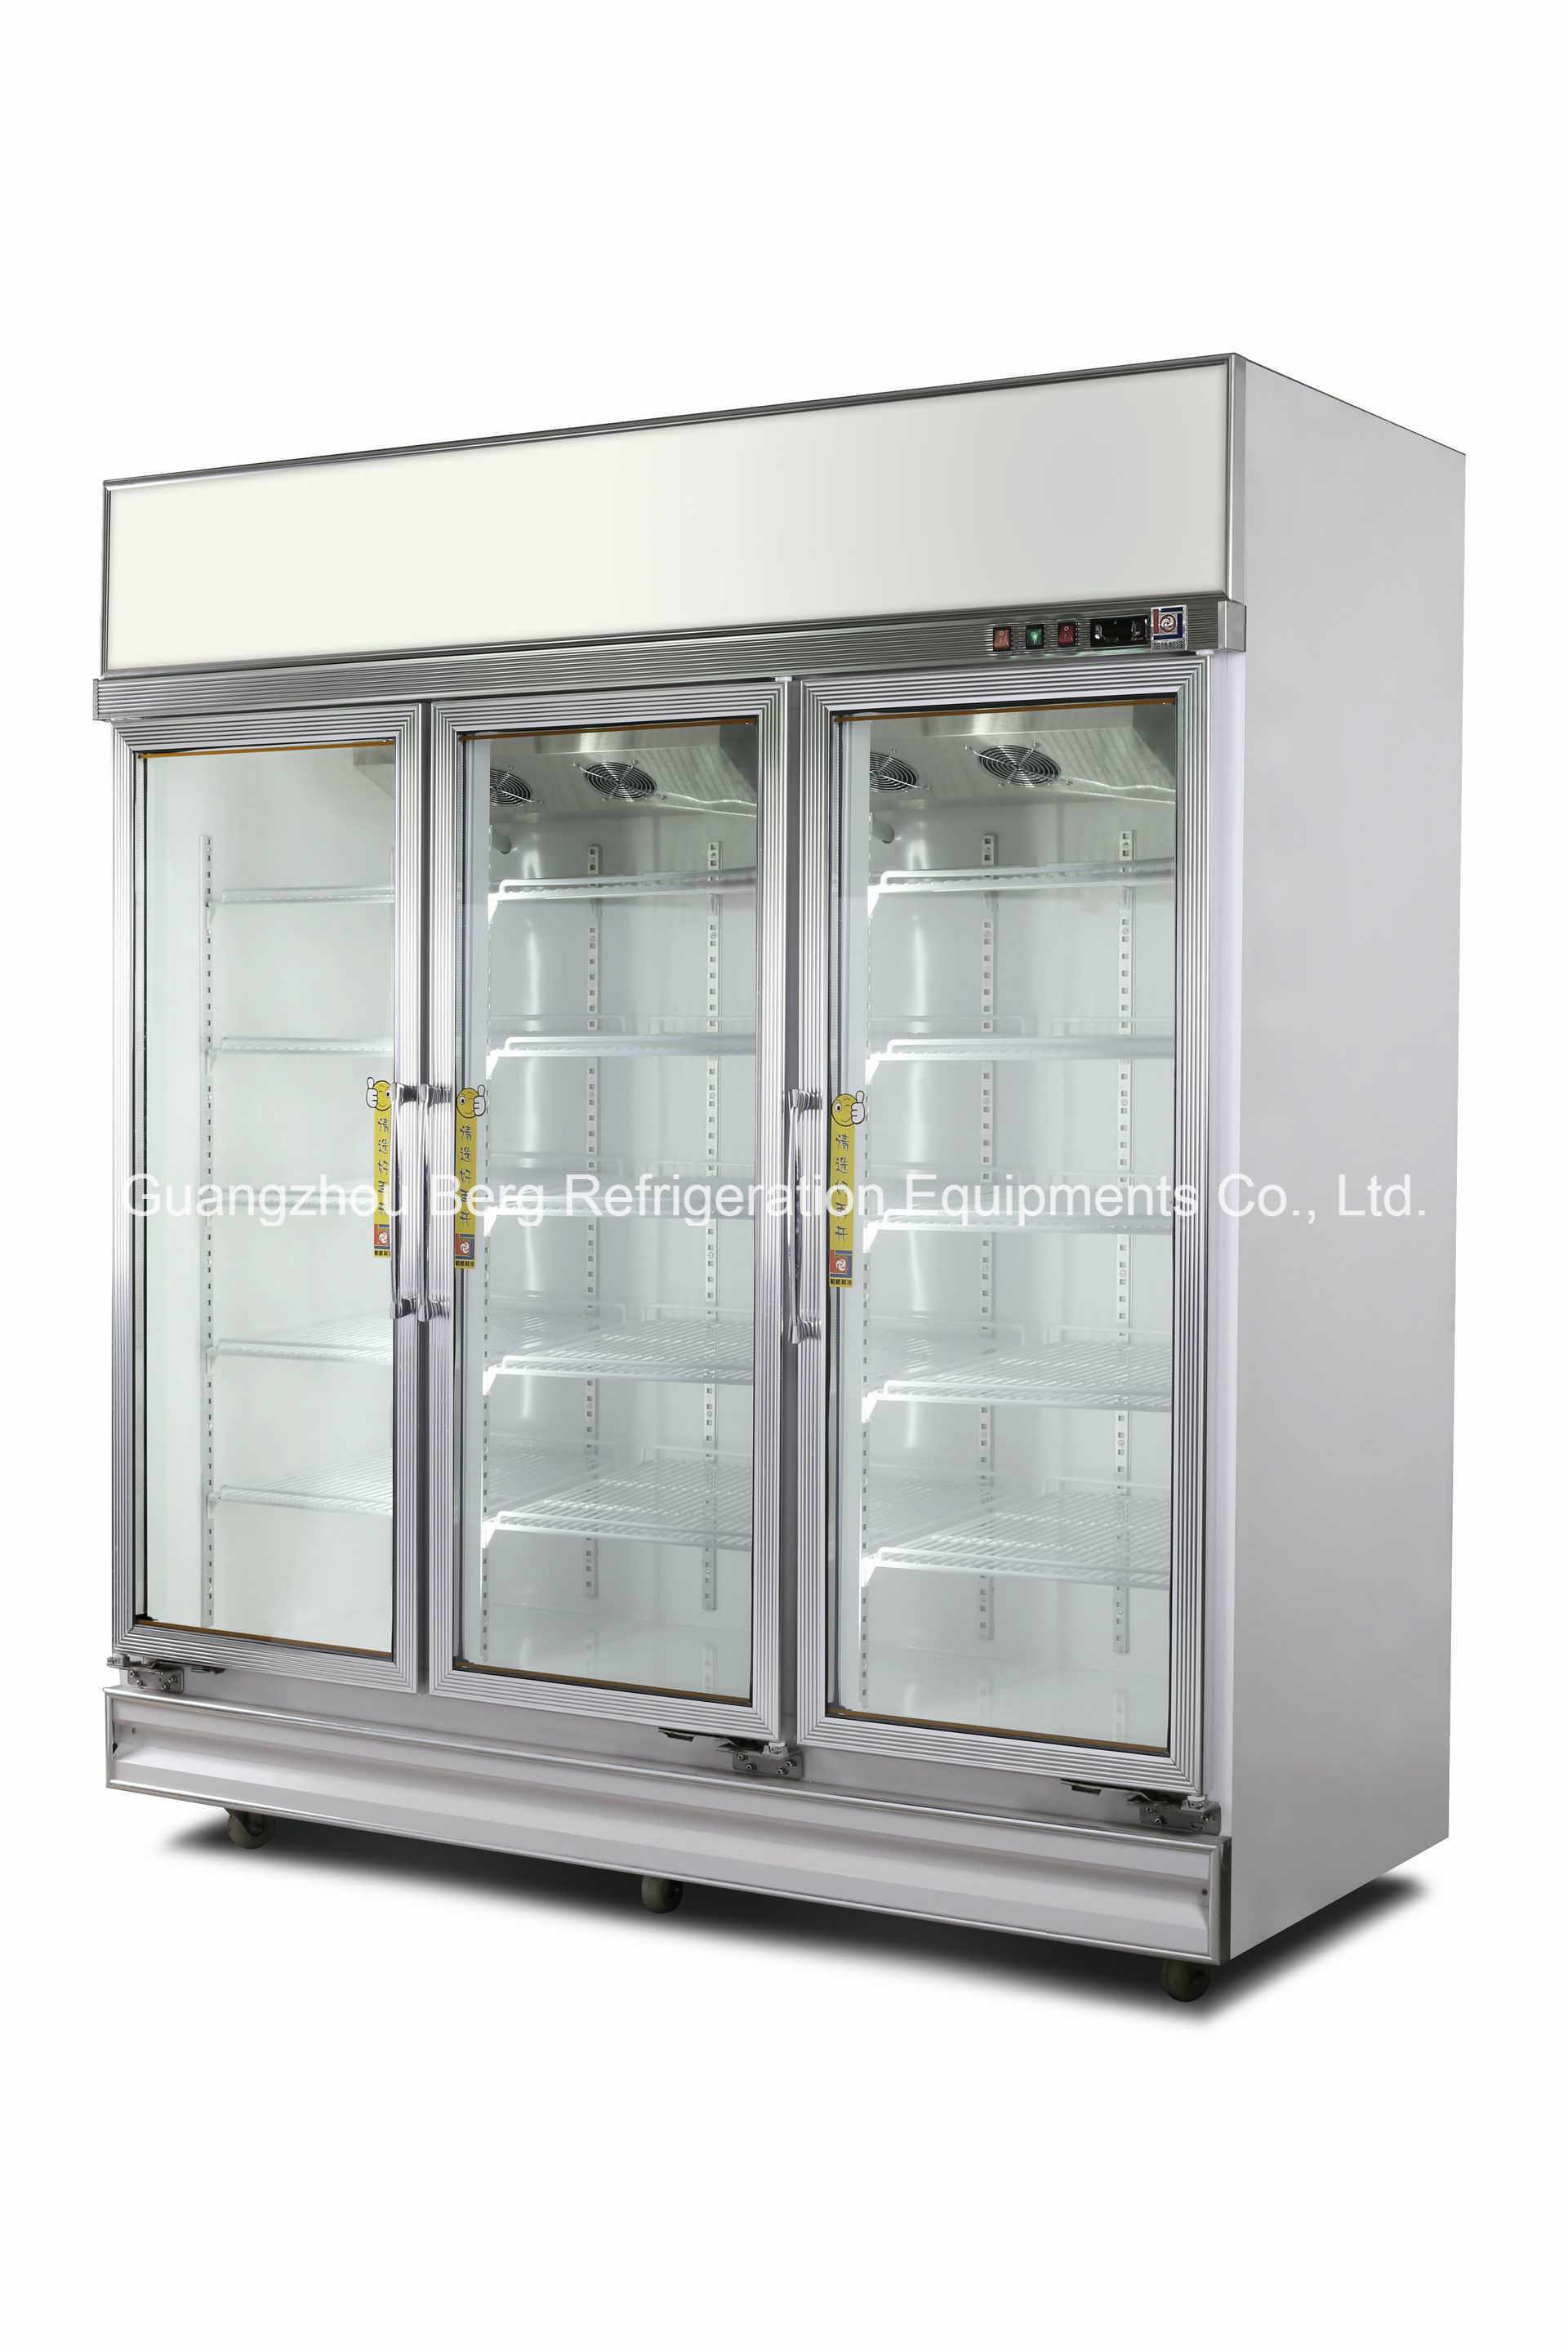 Commercial Two Glass Door Refrigerated Display Cooler for Drinks